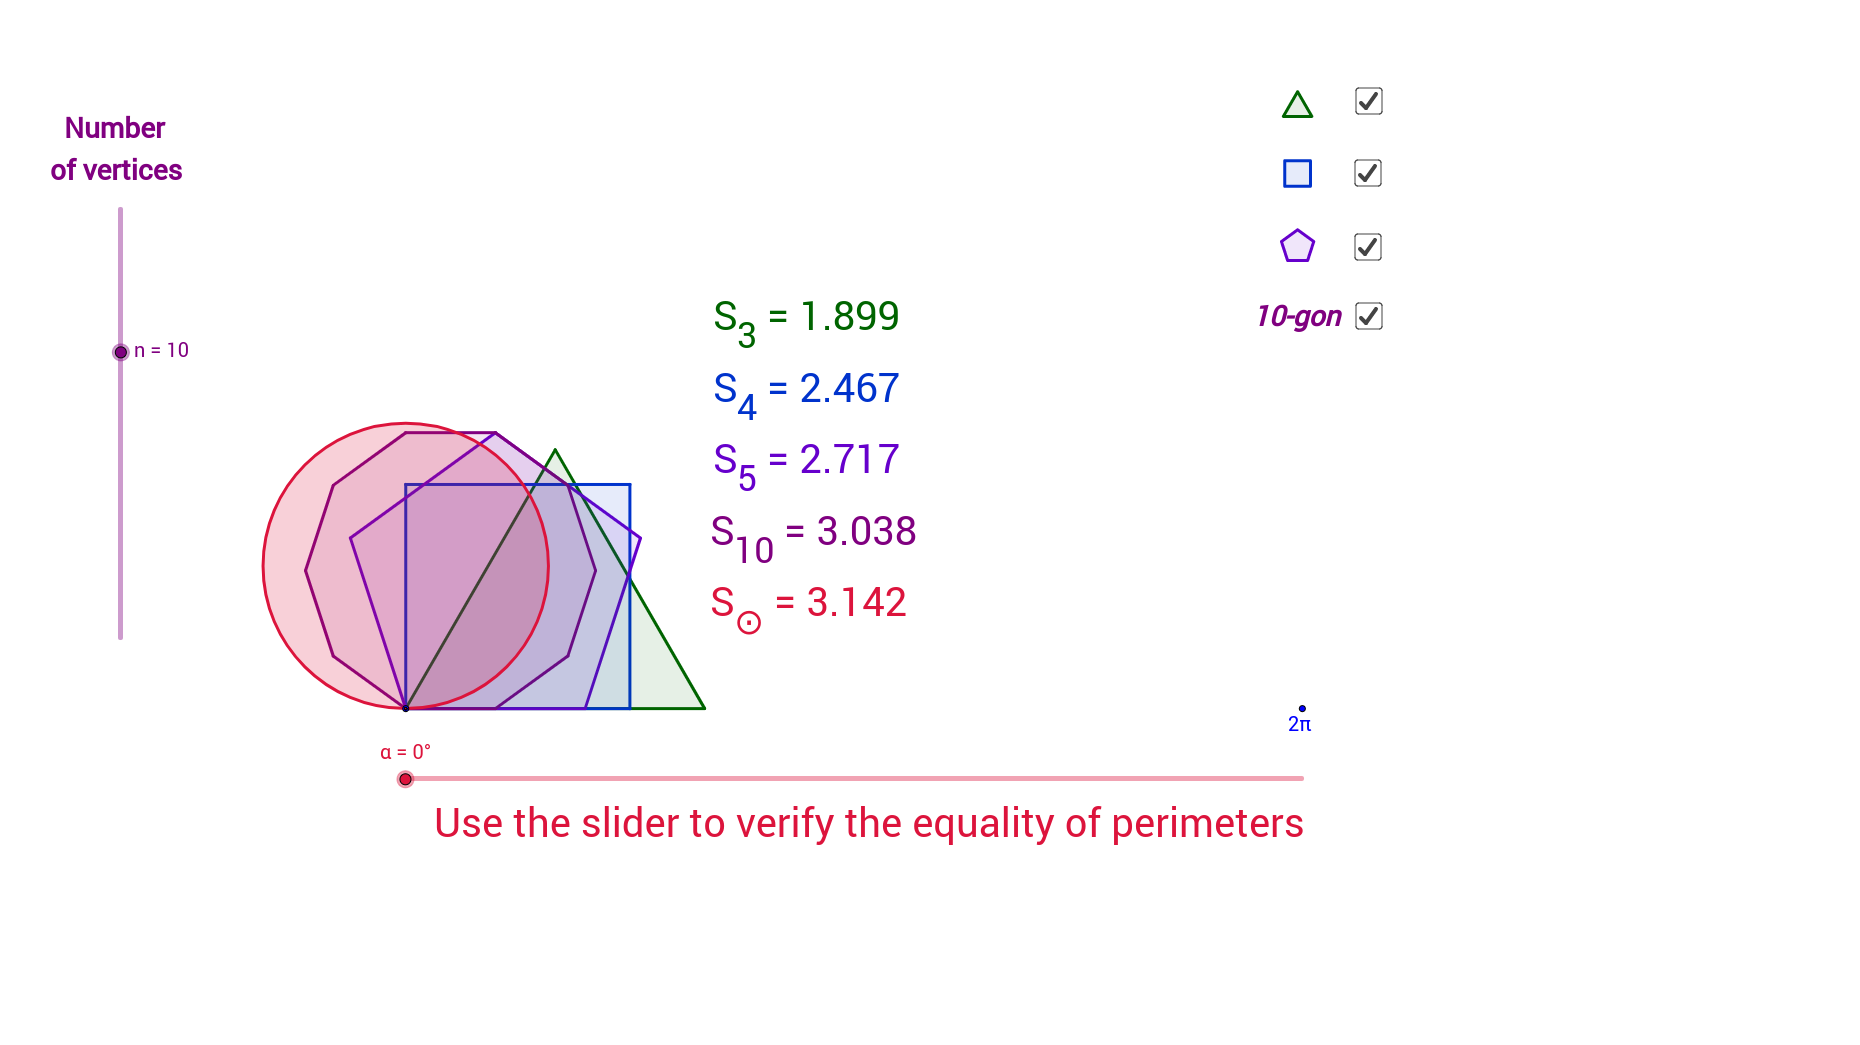 worksheet Area And Perimeter Of Polygons Worksheet area of isoperimetric figures geogebra which figure is the largest amongst those having a given perimeter one polygons why